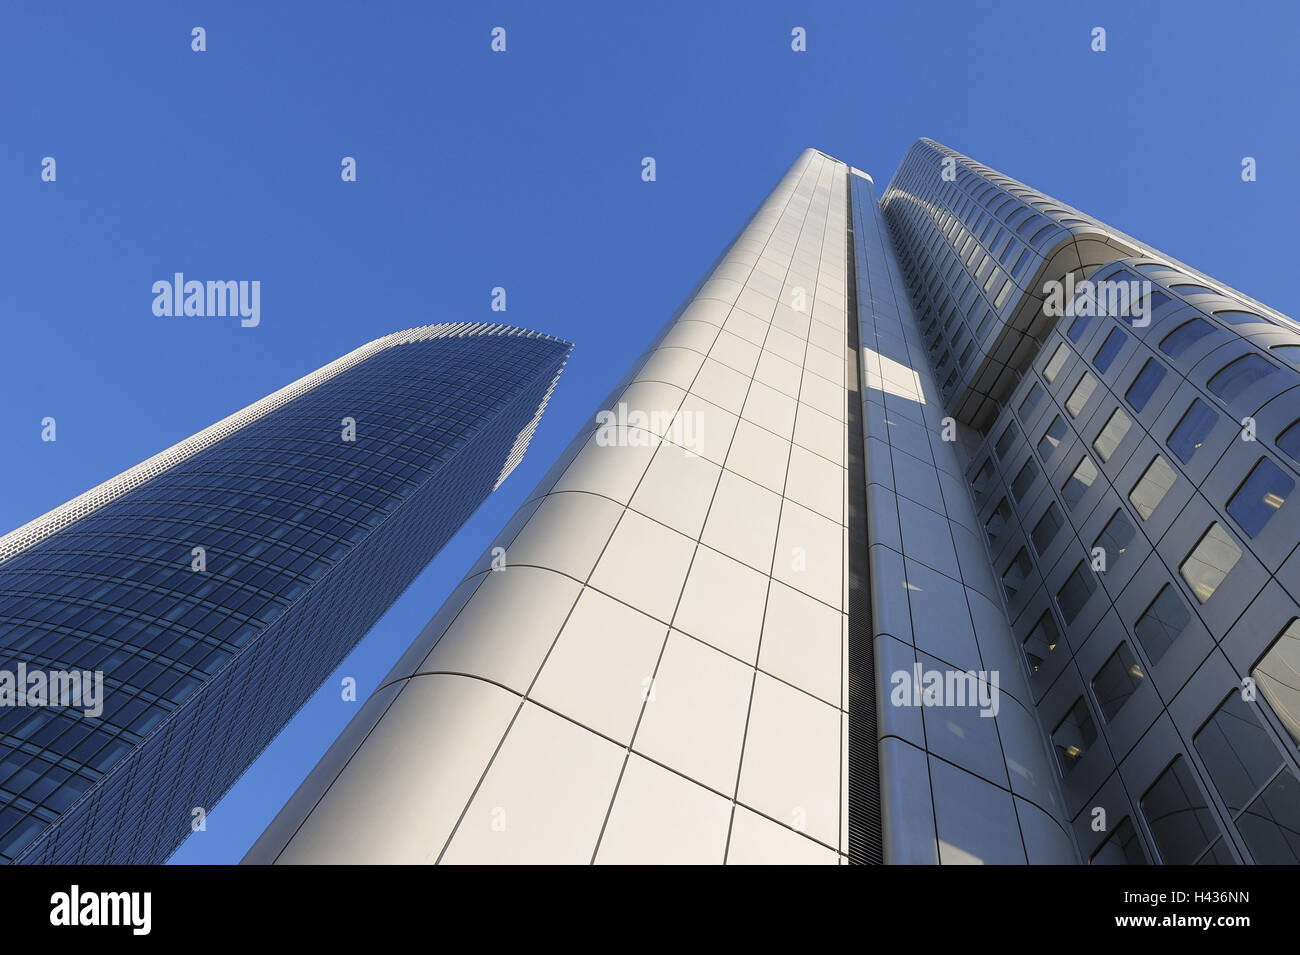 Germany, Hessen, Frankfurt on the Main, the Dresdner Bank, bank high rise, perspective, Stock Photo